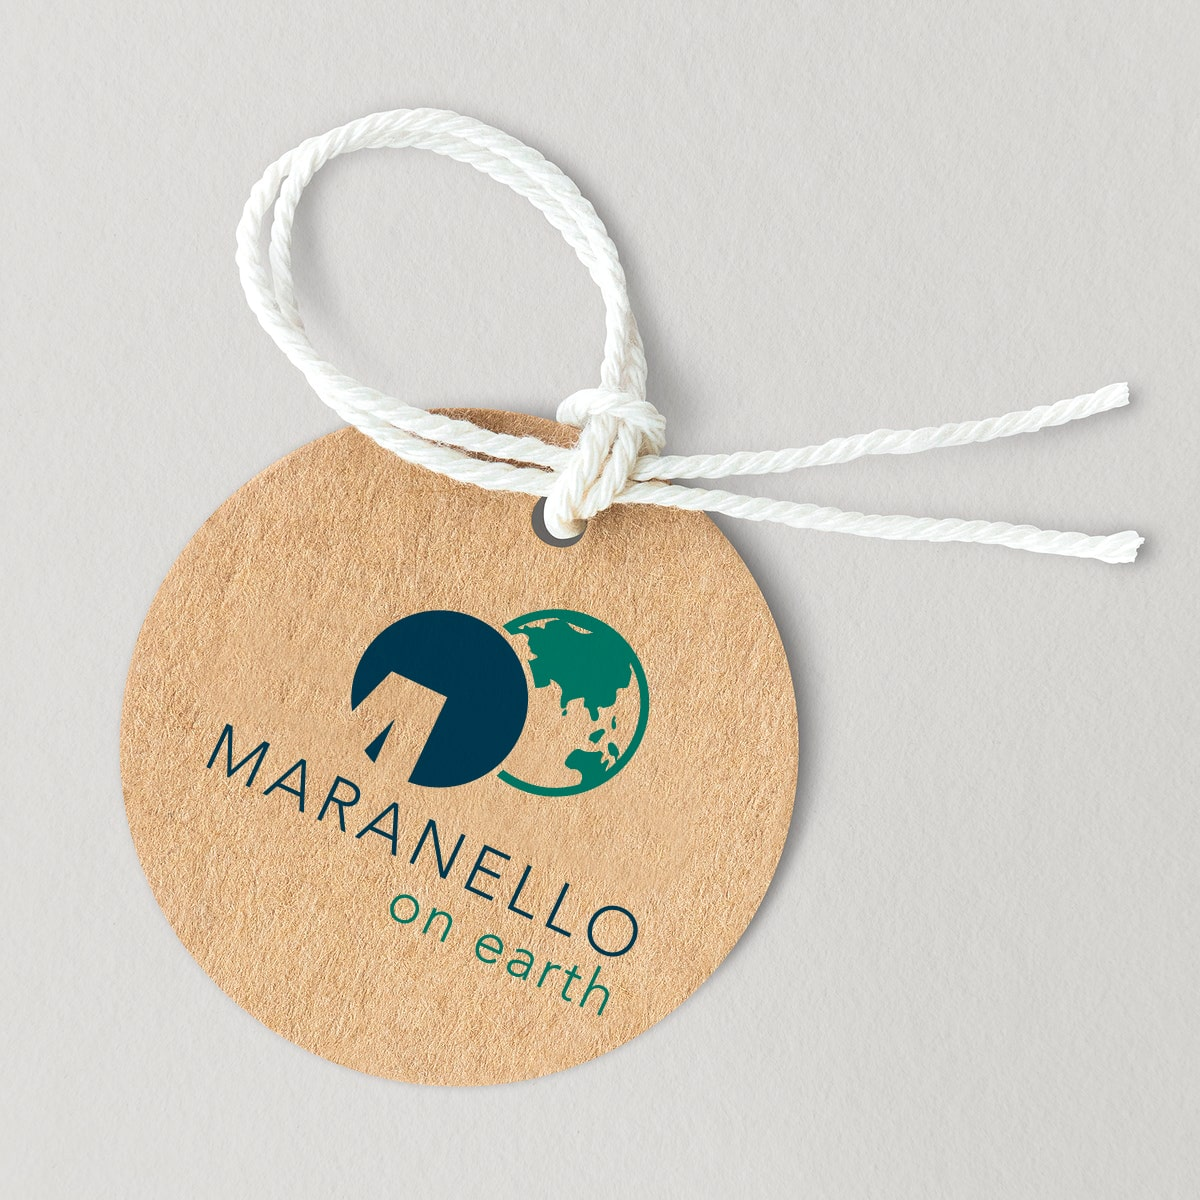 ethical label Maranello on Earth